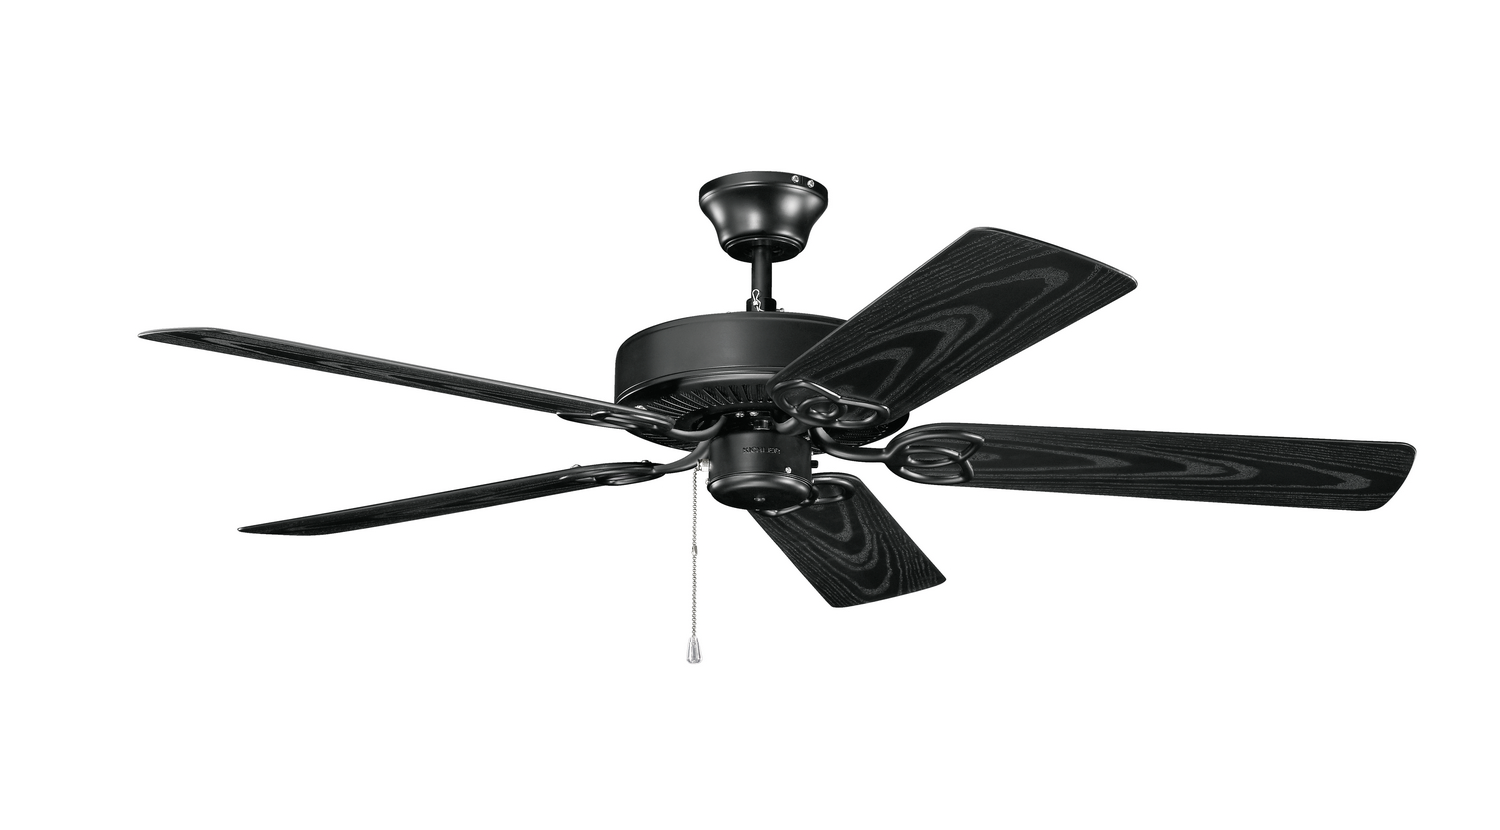 52 inchCeiling Fan from the Basics collection by Kichler 401SBK